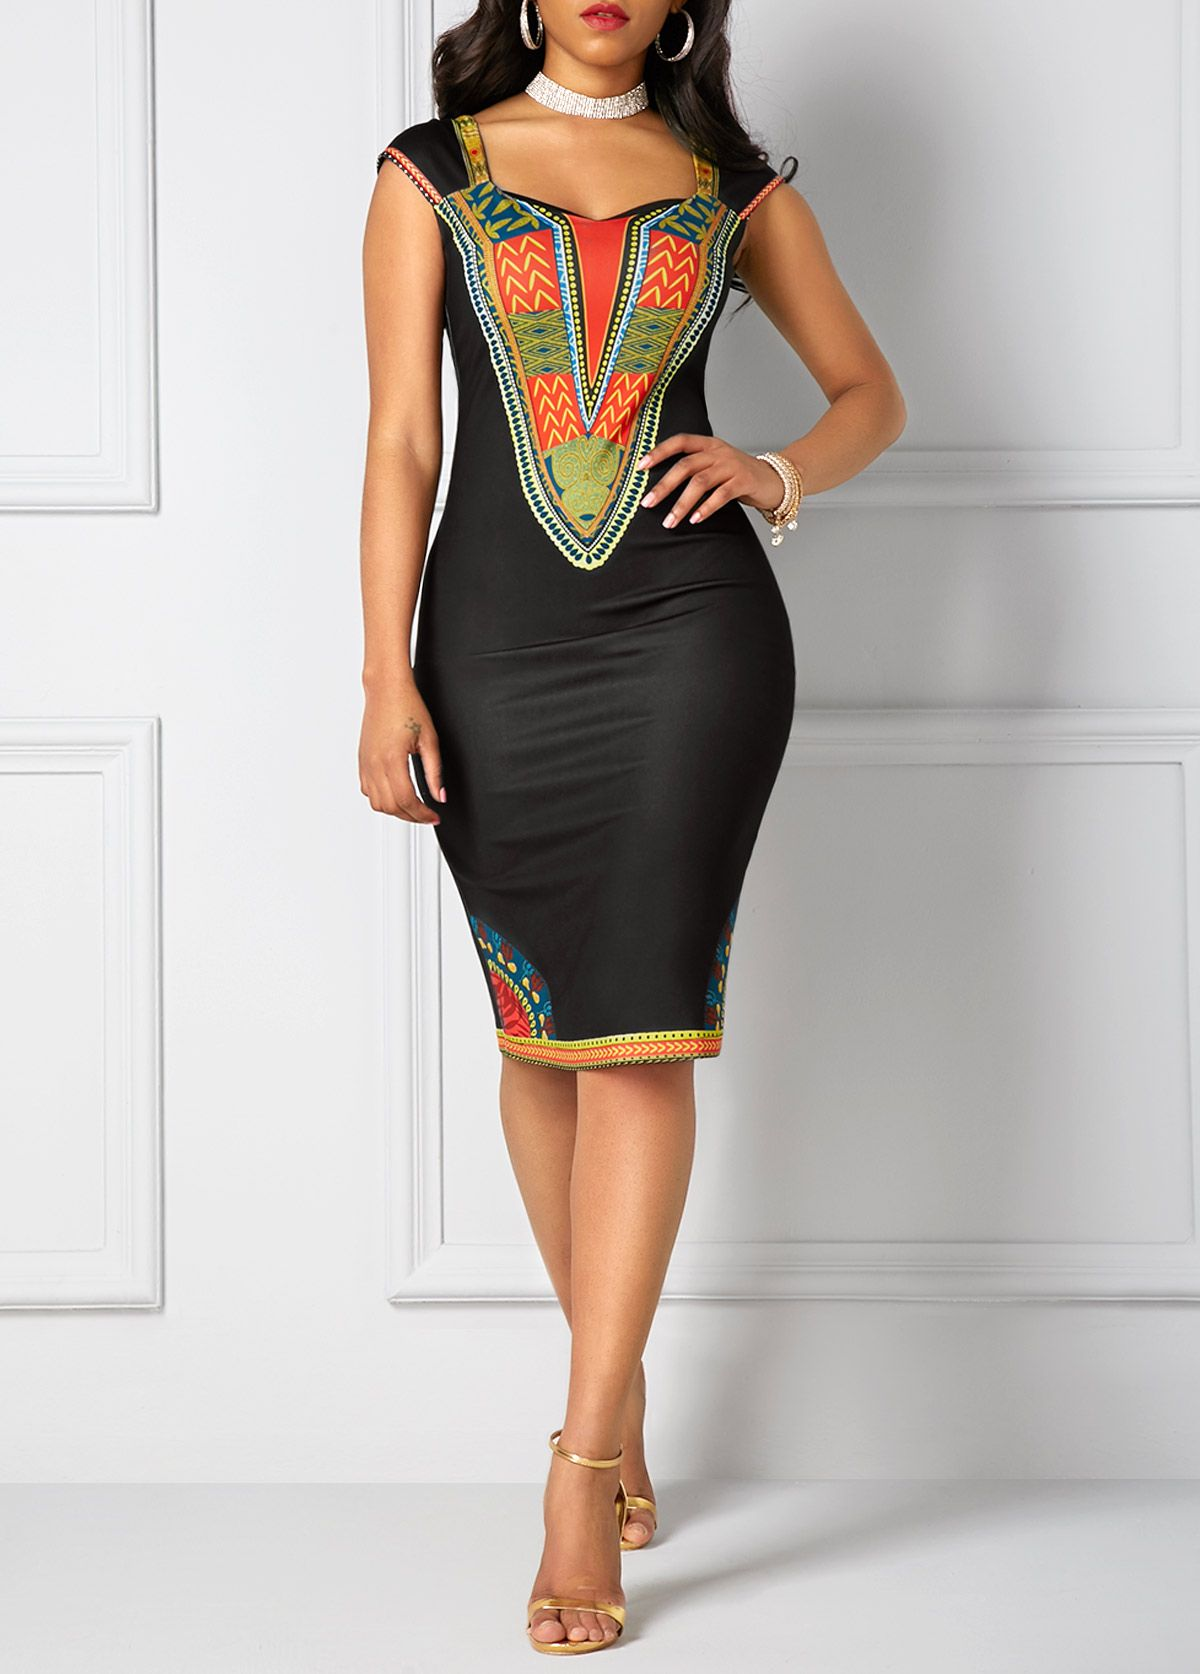 Dashiki Print Black Open Back Sheath Dress On Sale Only Us